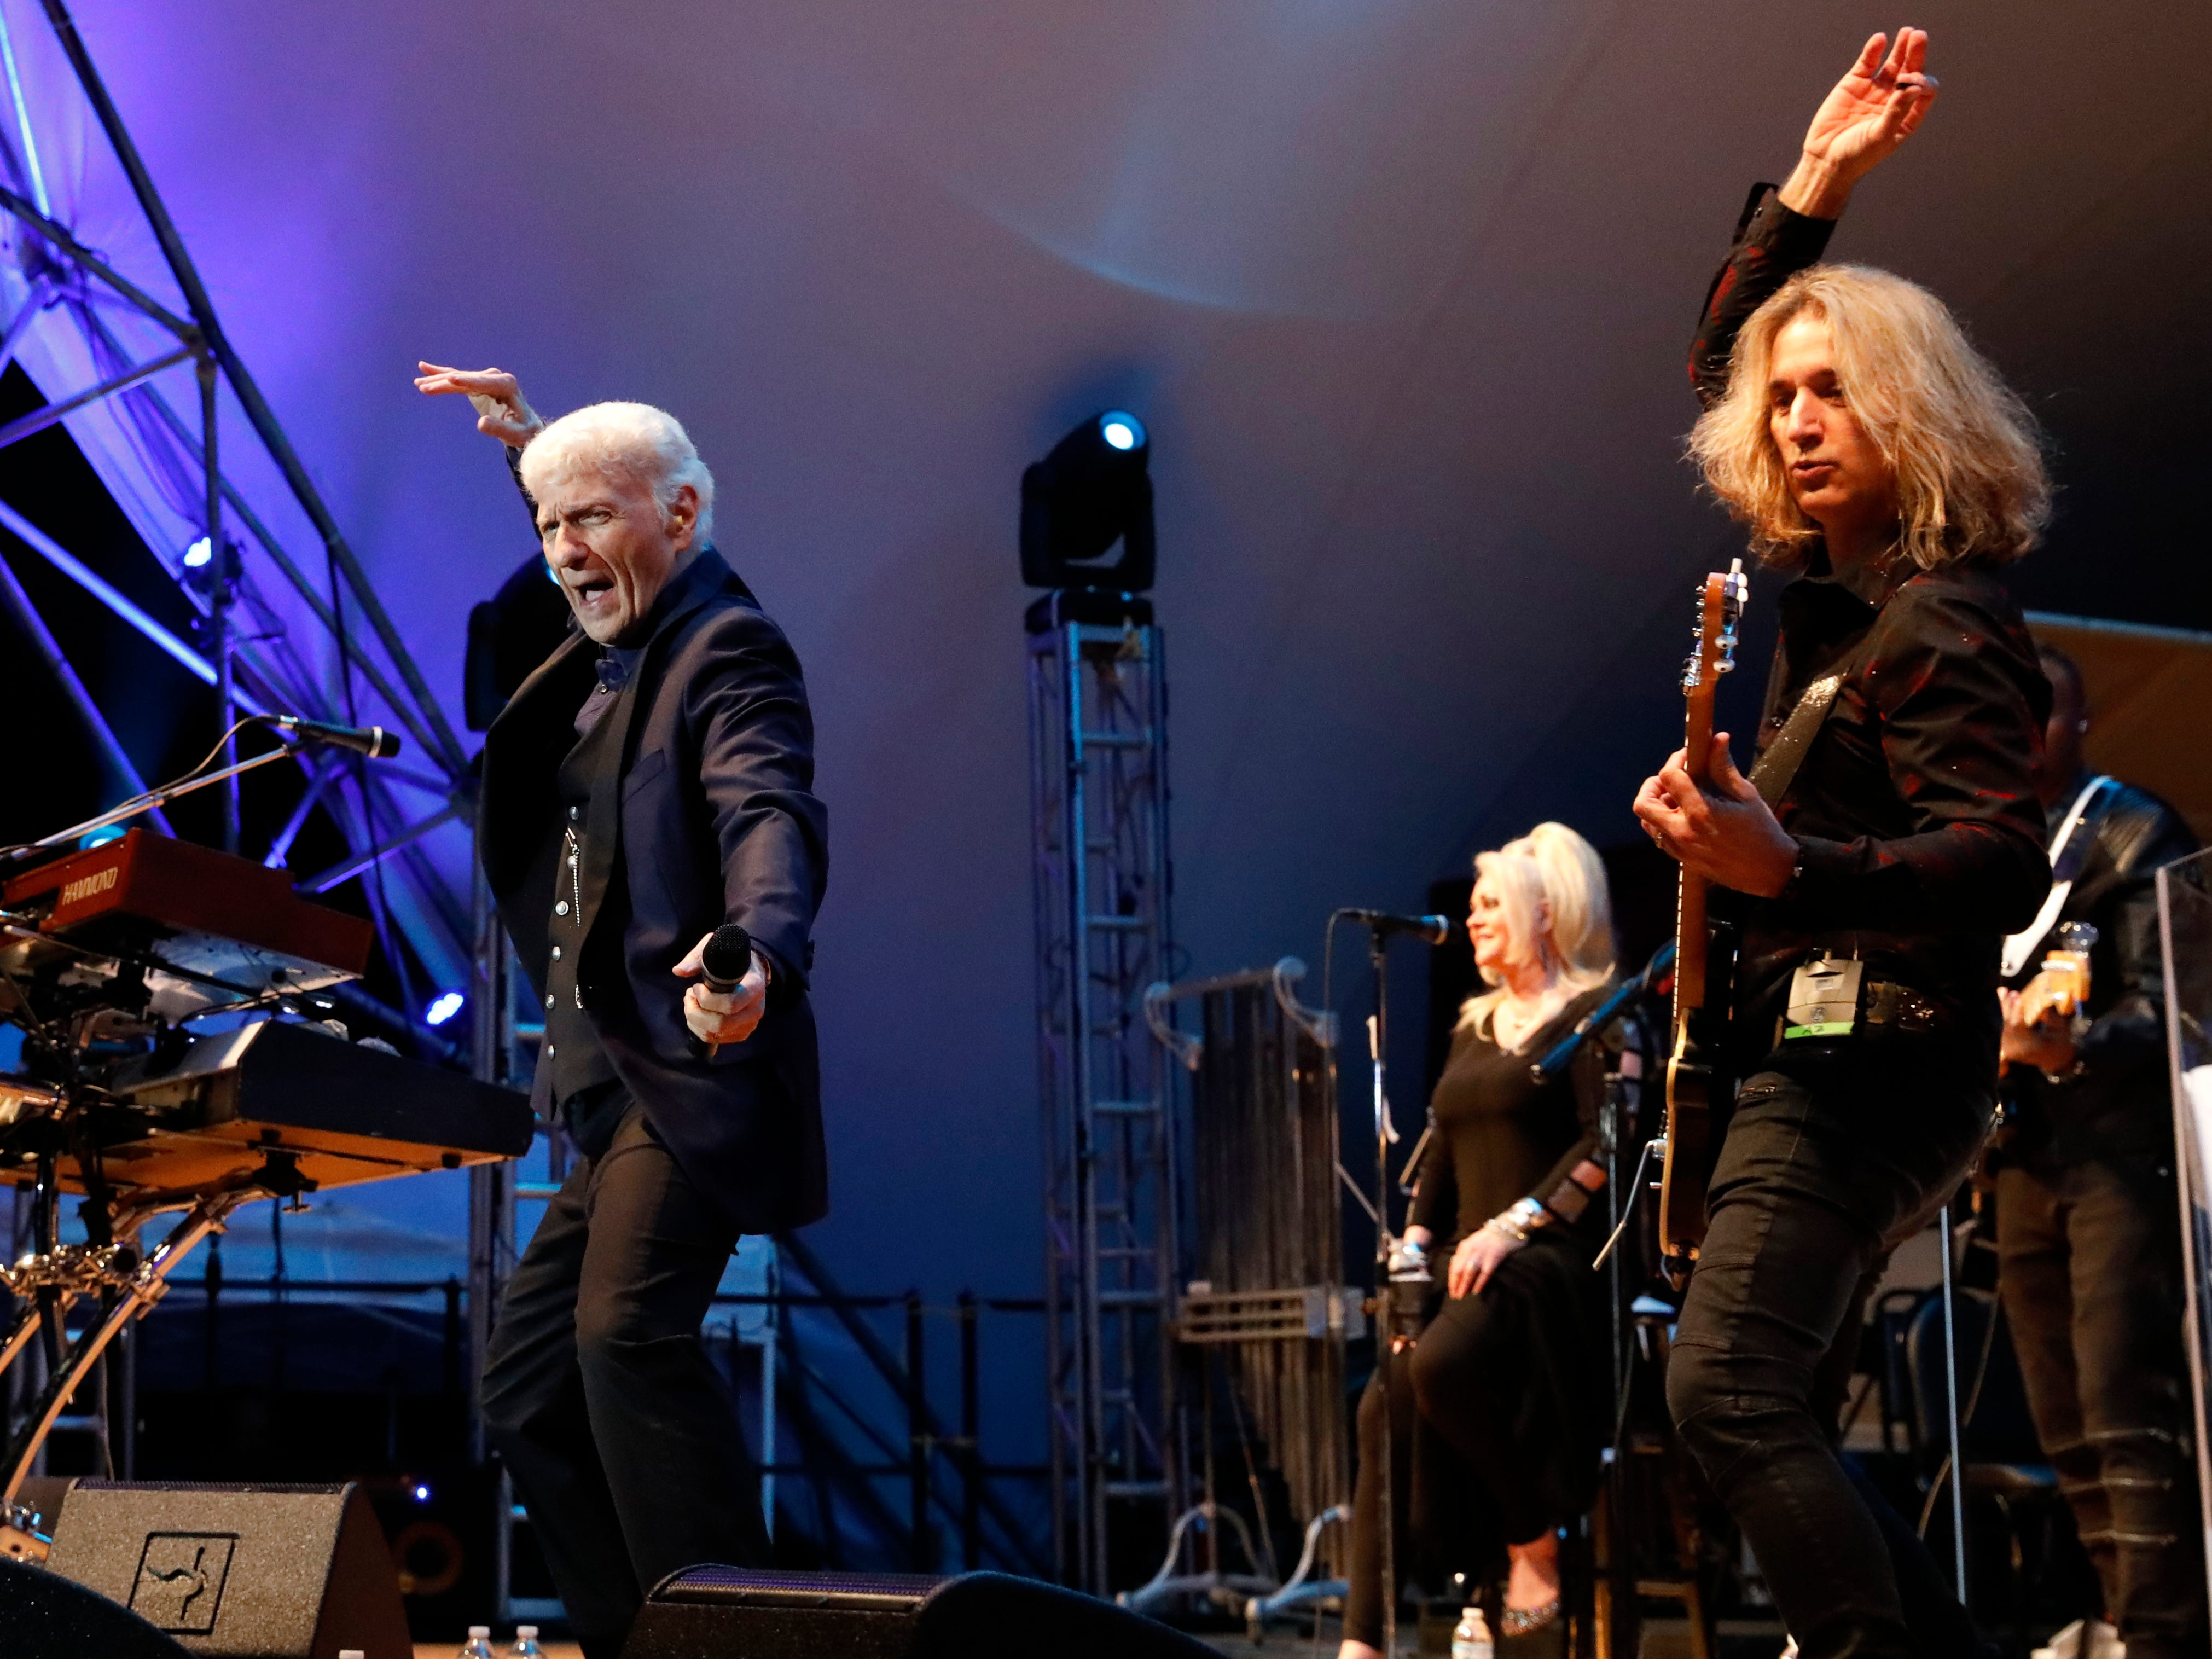 Dennis DeYoung, a founding member of the band Styx, performed at the first headline concert of the 2018 Lancaster Festival Saturday night, July 21, 2018, at the Ohio University Lancaster Wendel Concert Stage in Lancaster.